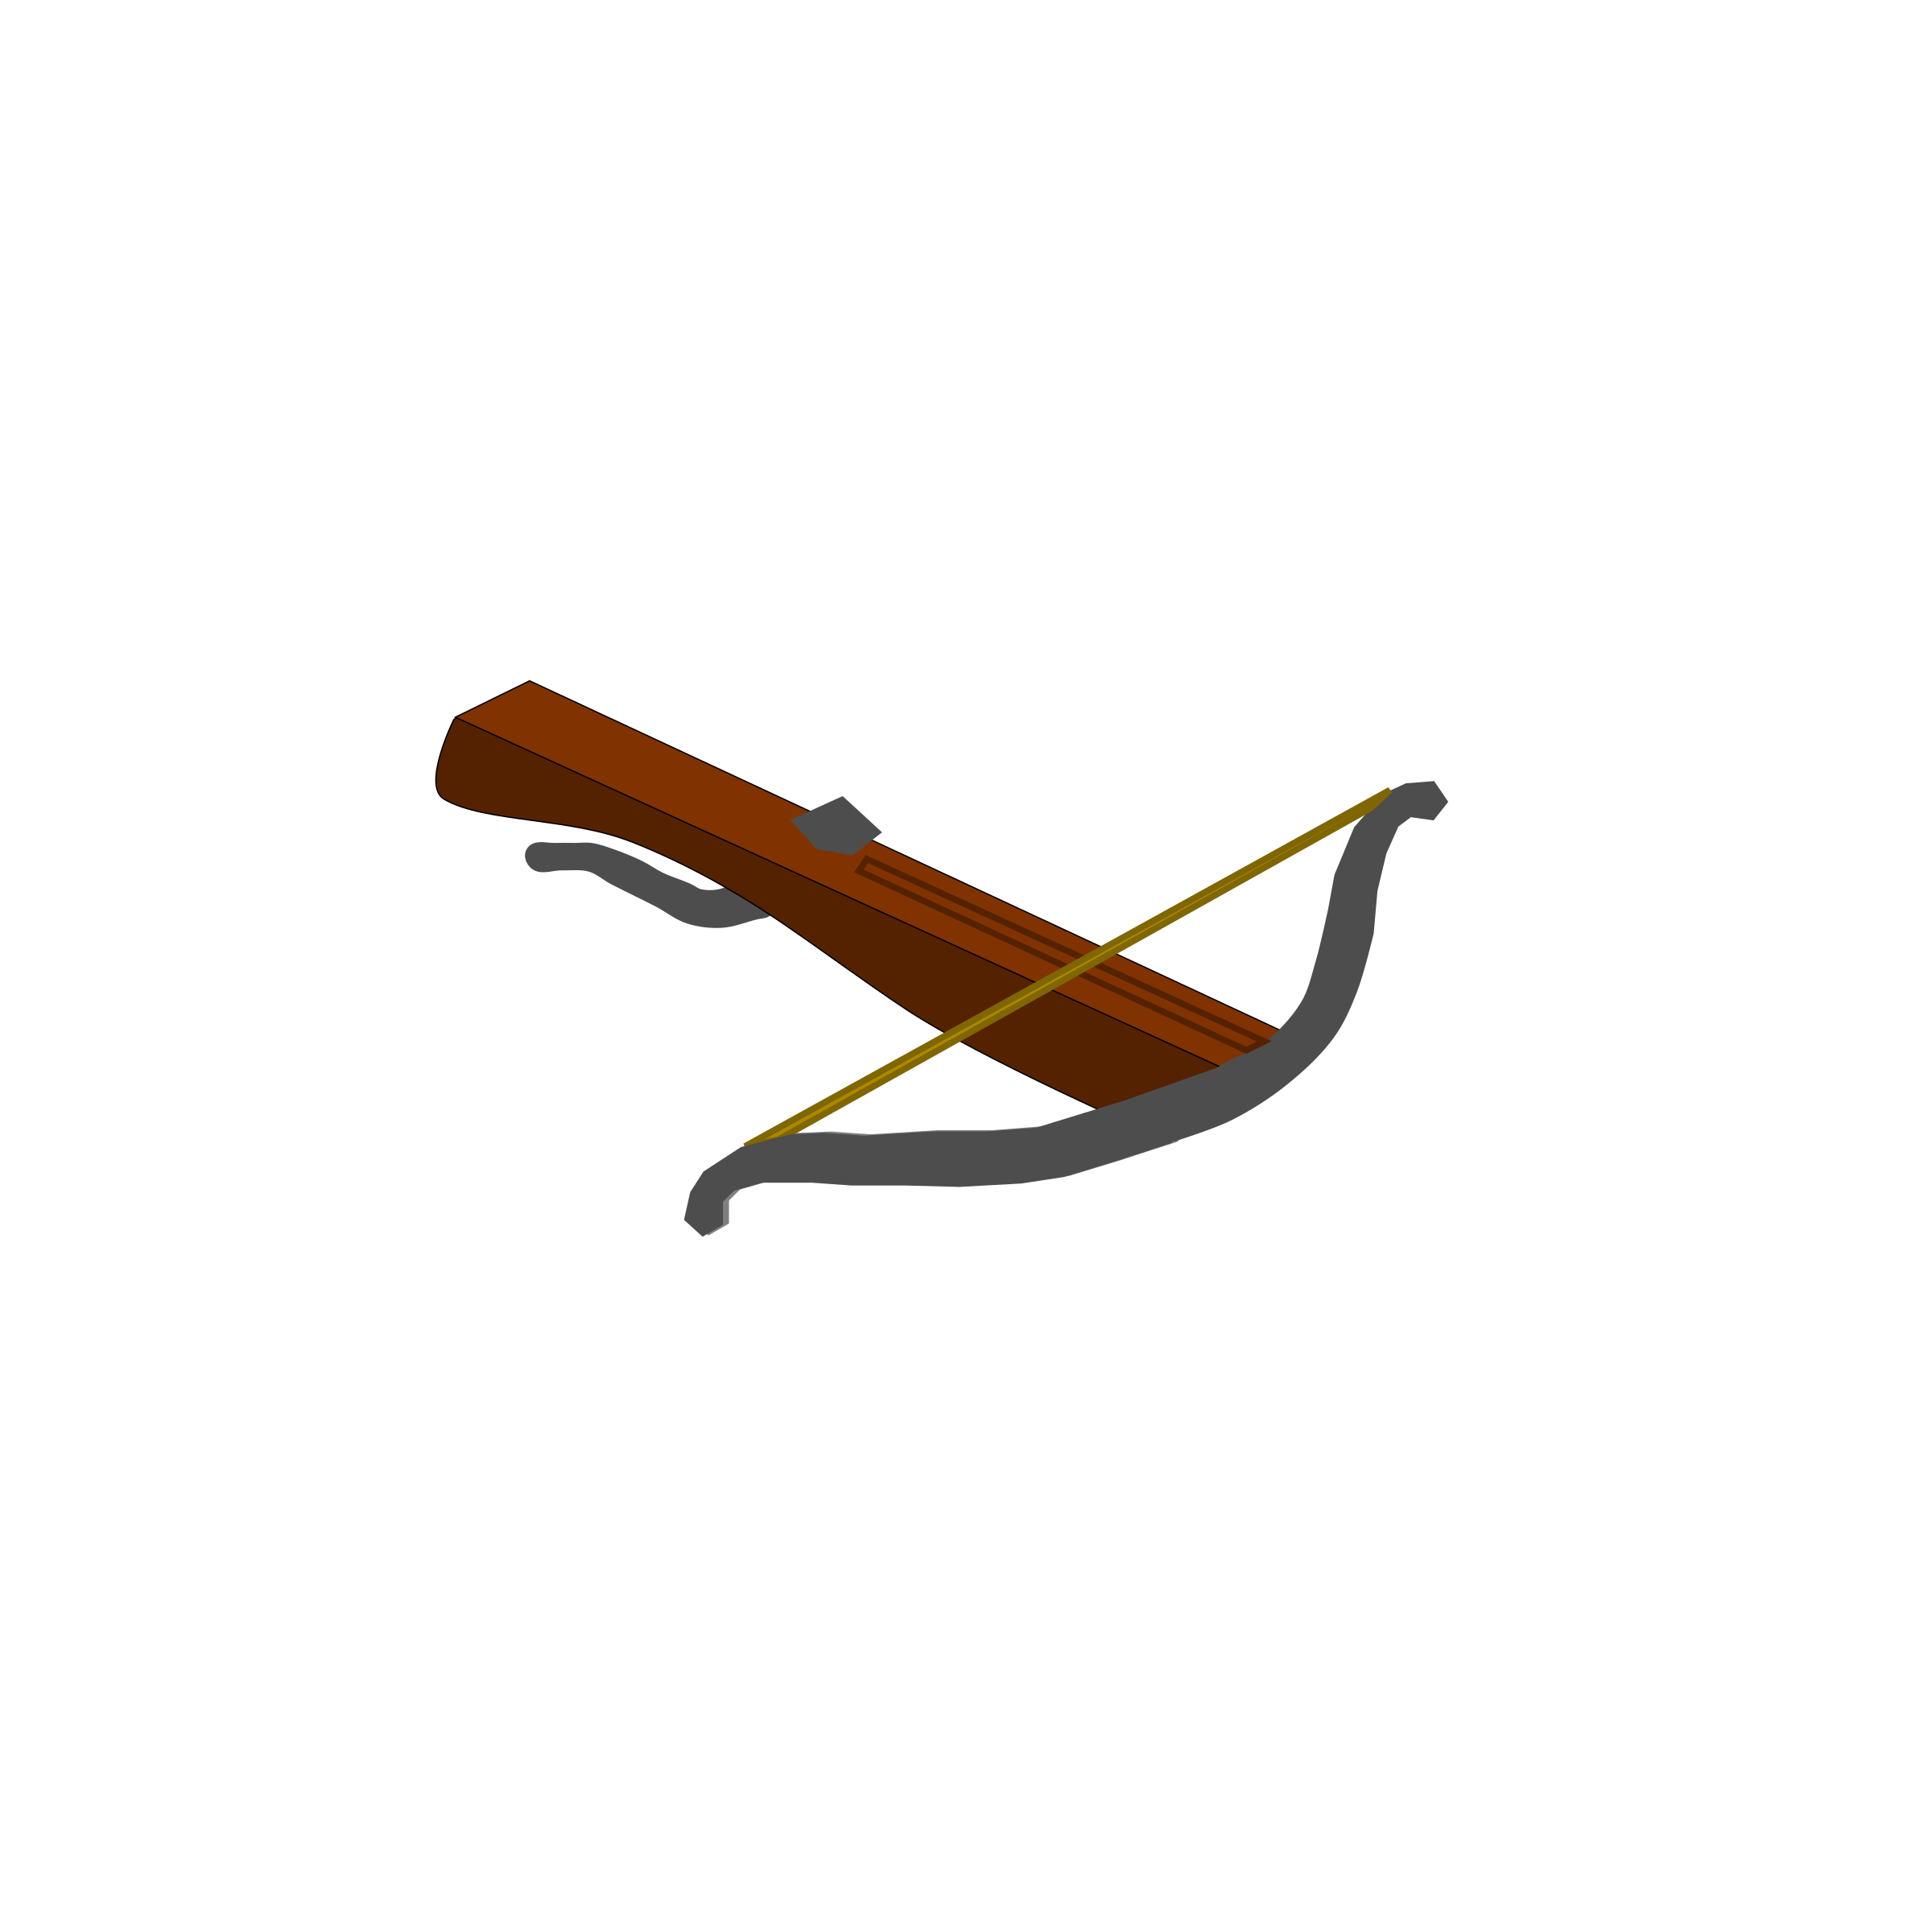 Clipart crossbow vector free stock Free Crossbow Cliparts, Download Free Clip Art, Free Clip Art on ... vector free stock